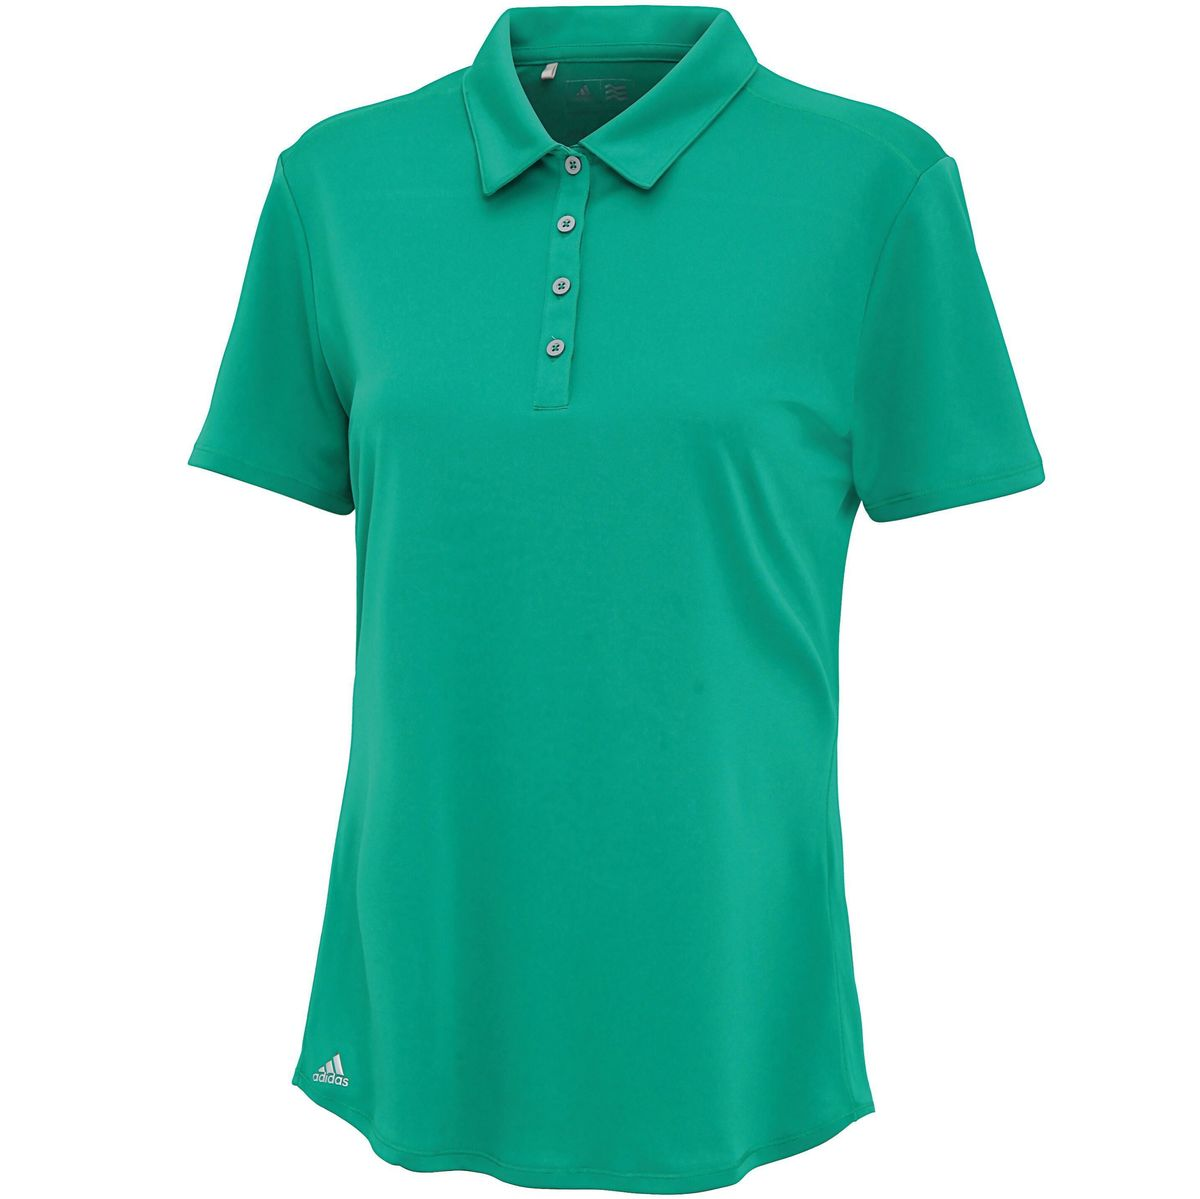 Polo performance ADIDAS manches courtes femme AD029 vert